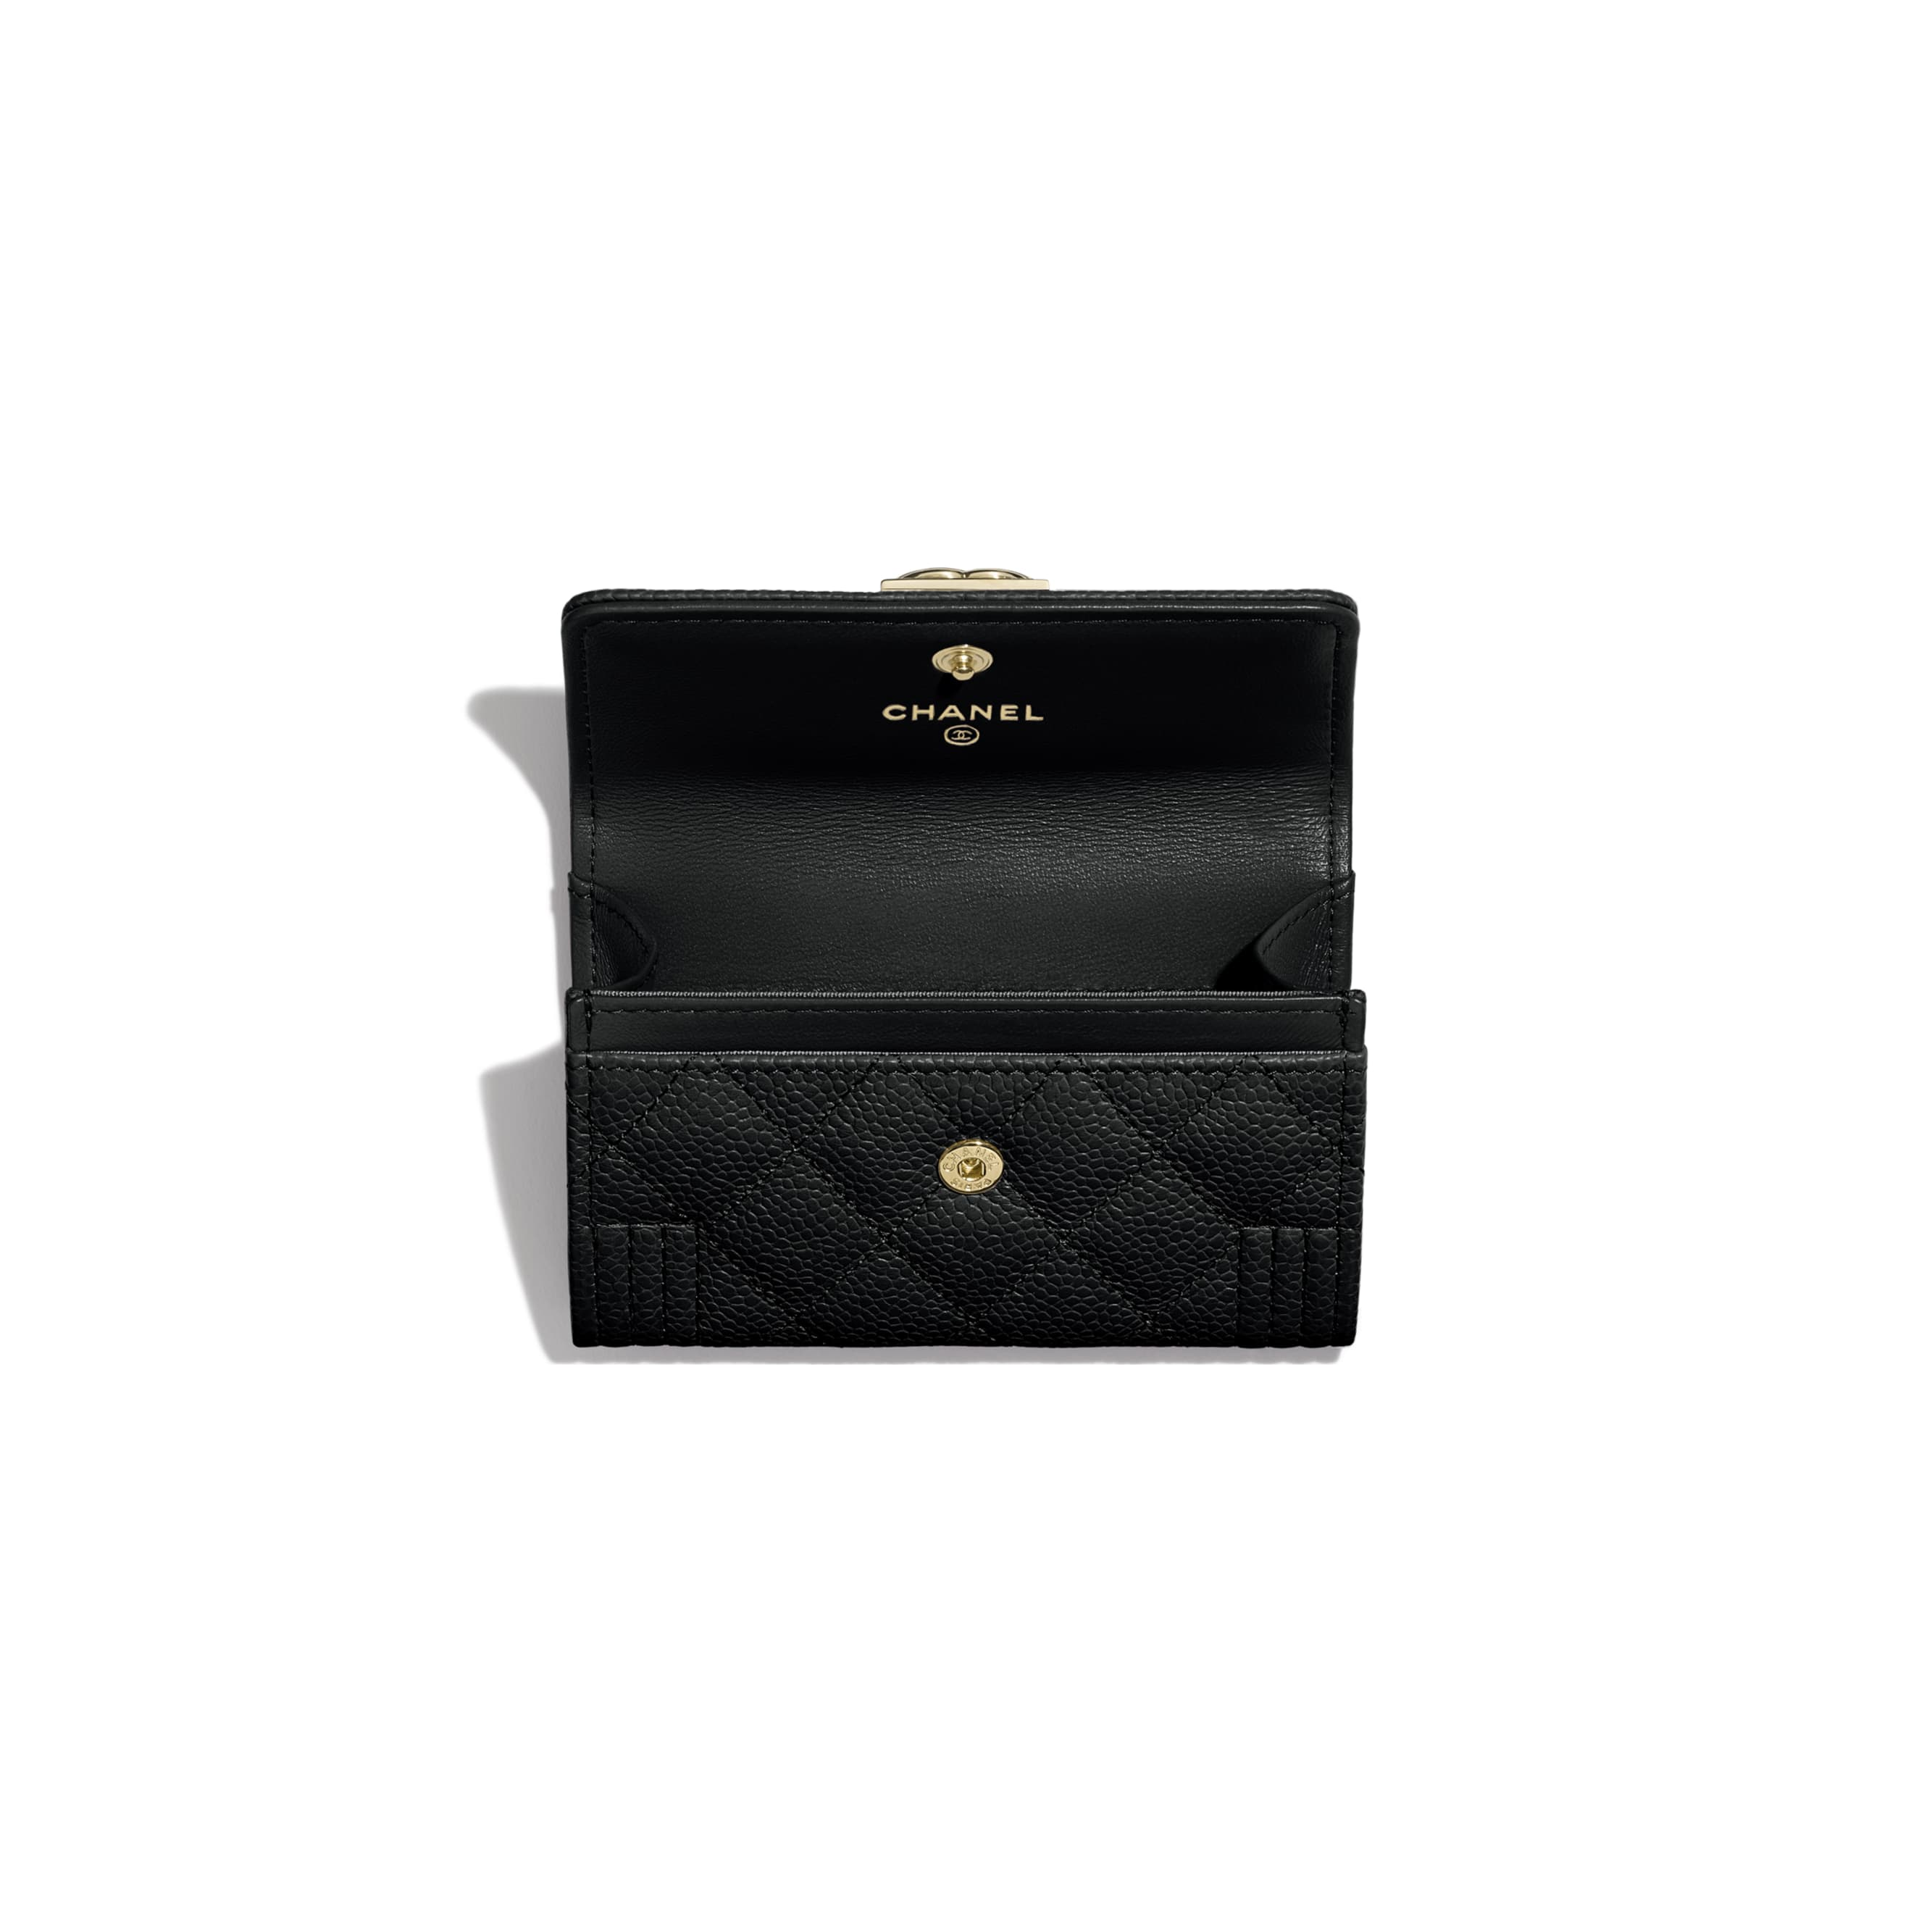 BOY CHANEL Flap Card Holder - Black - Grained Calfskin & Gold-Tone Metal - CHANEL - Other view - see standard sized version